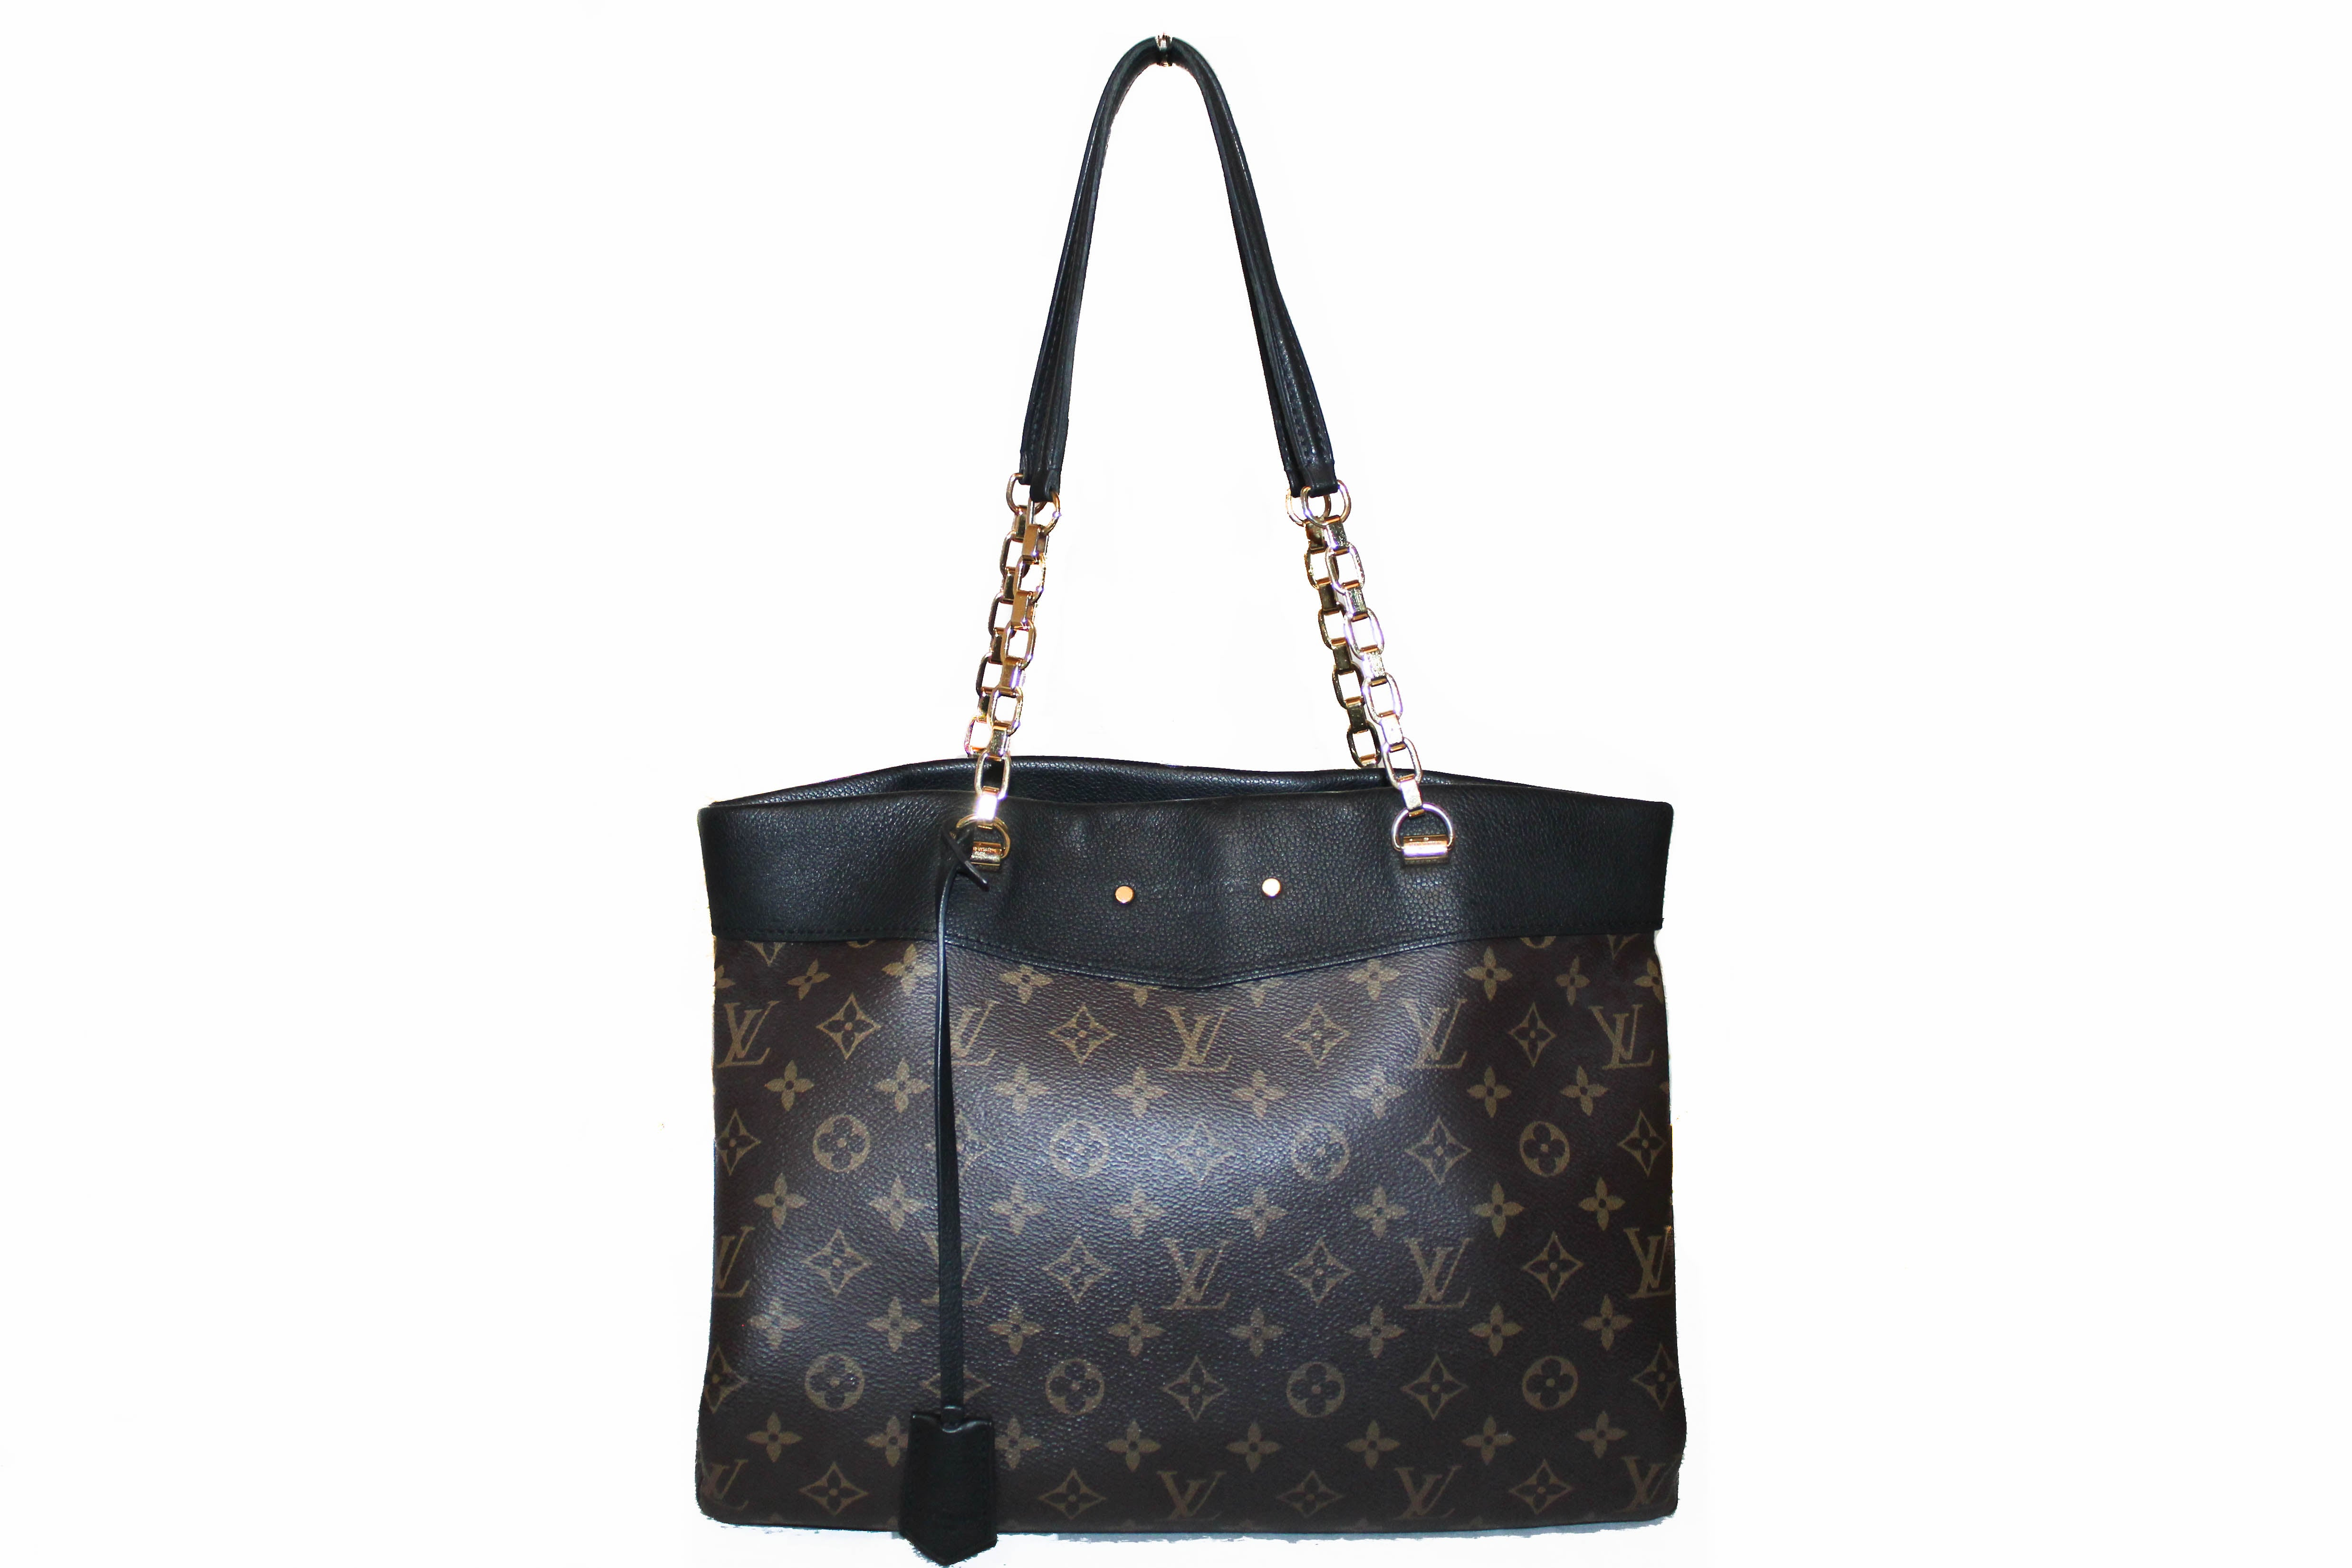 Authentic Louis Vuitton Monogram Noir Pallas Shopper Tote Shoulder Bag